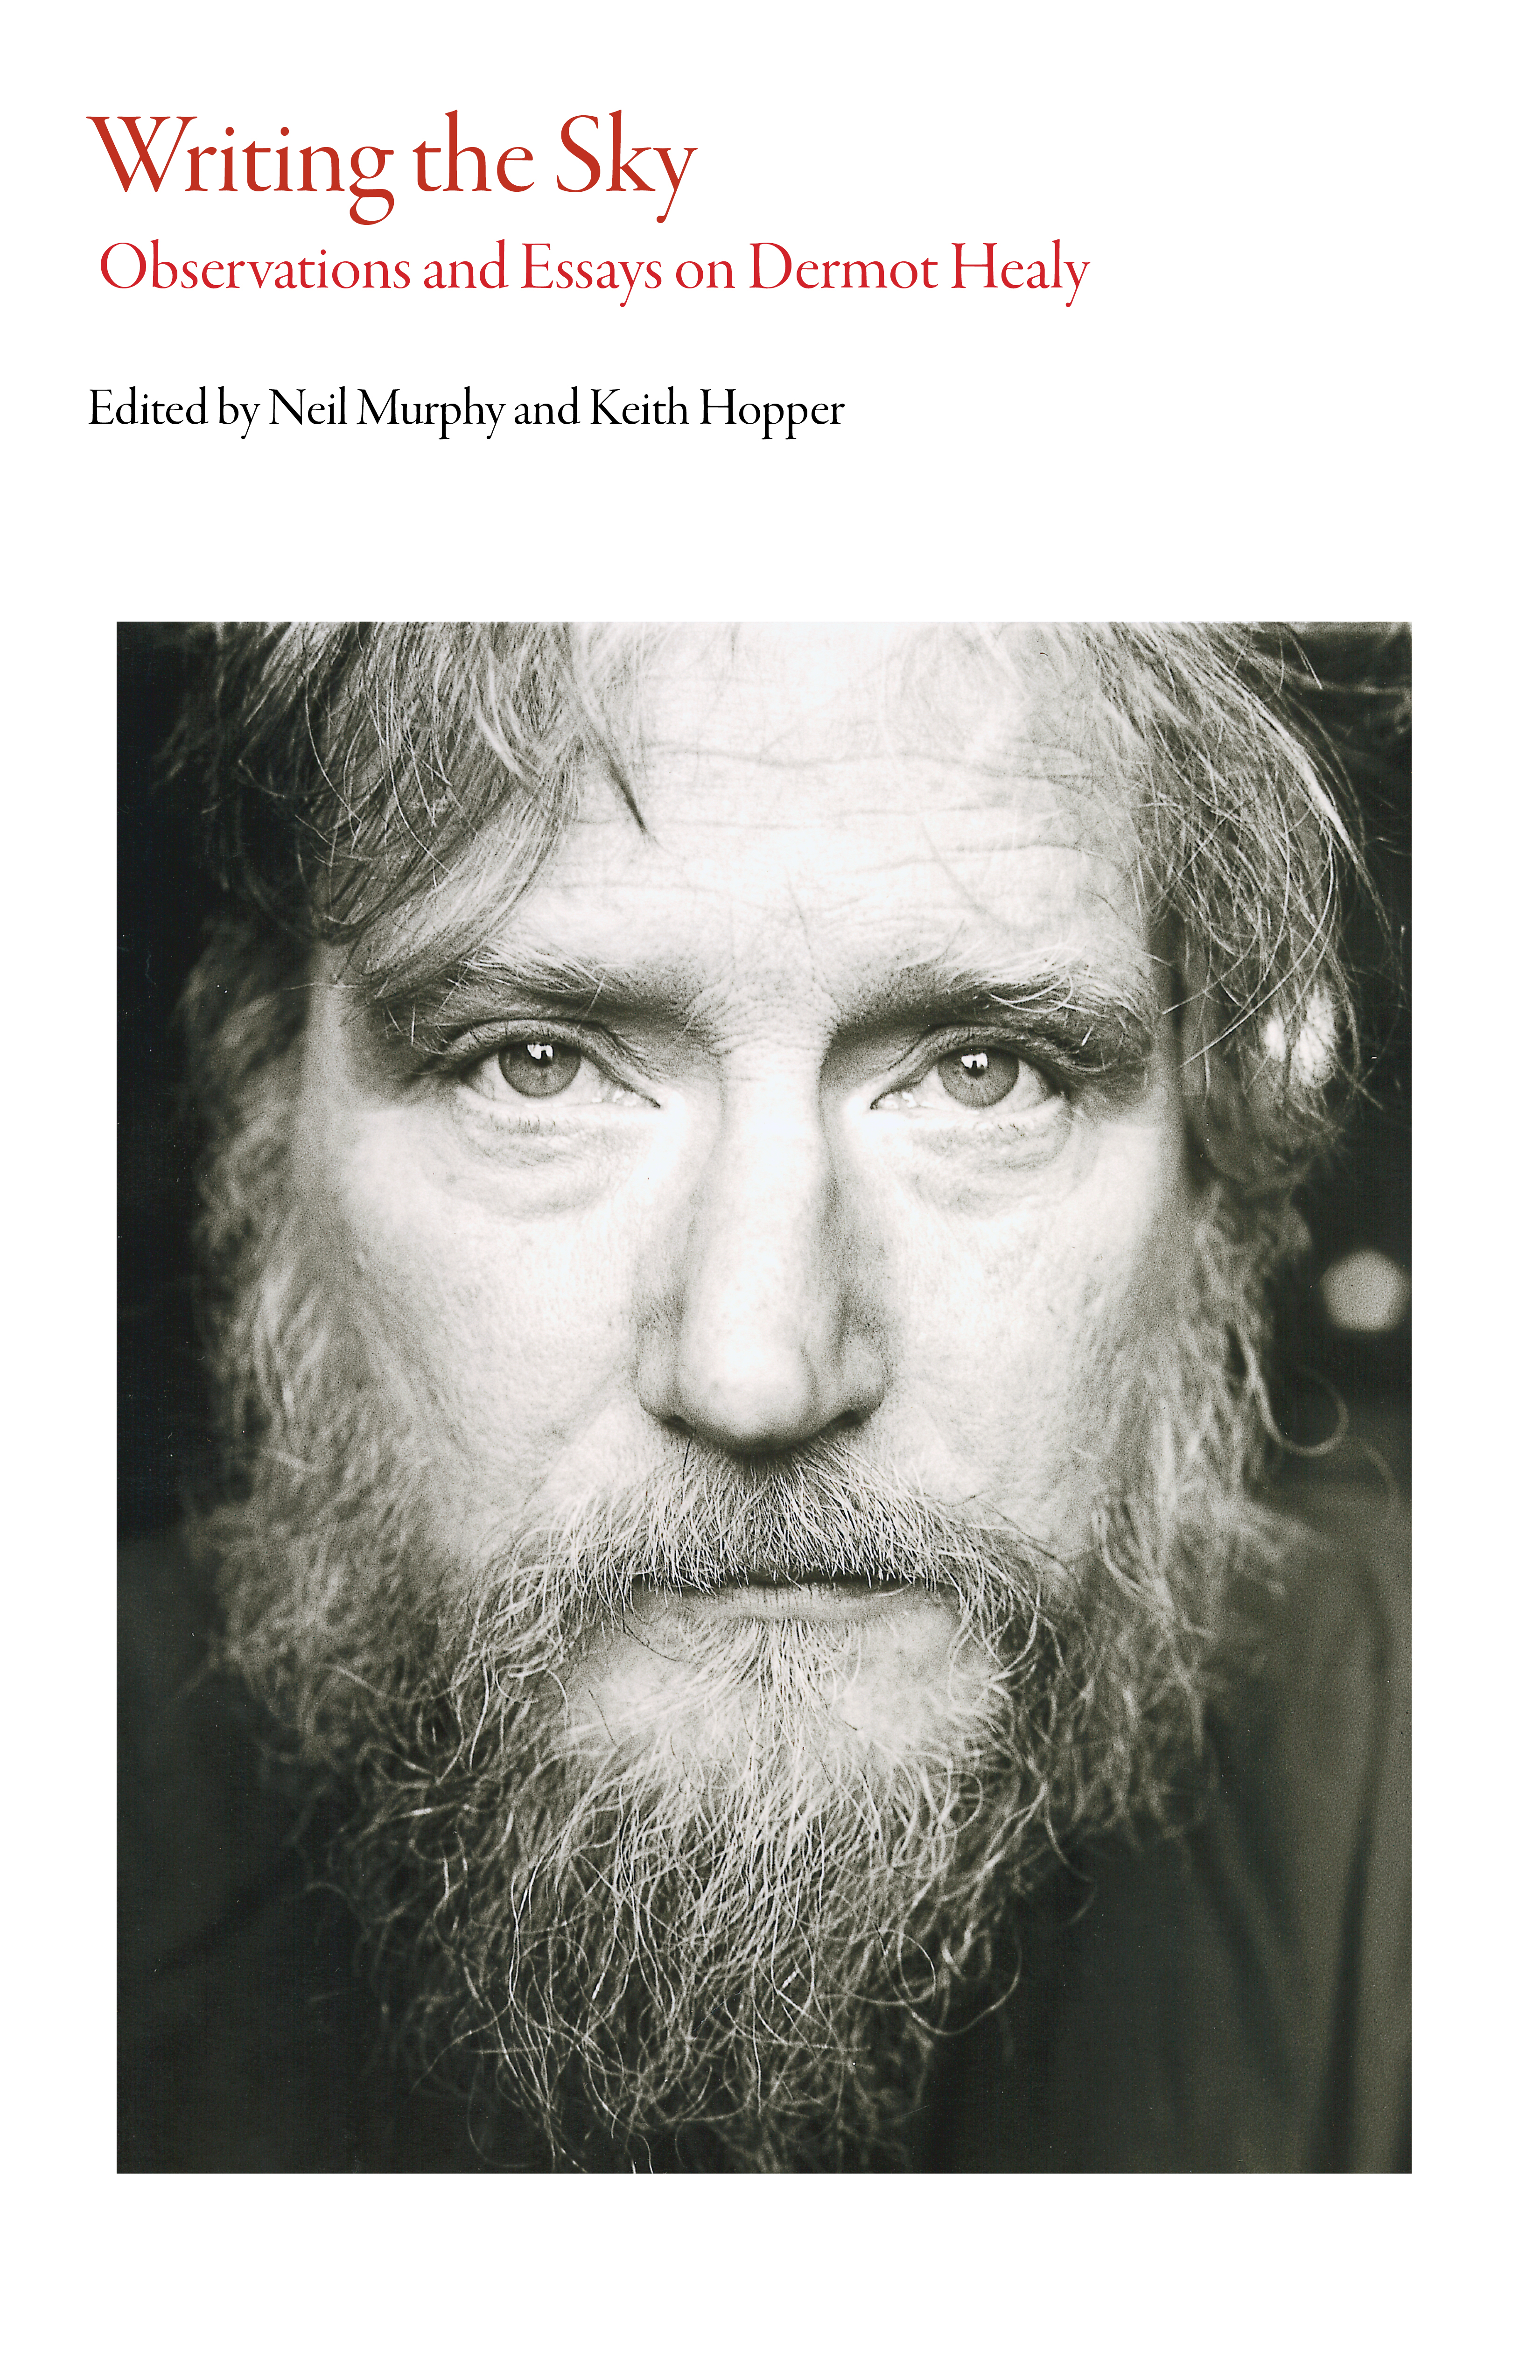 writing the sky observations and essays on dermot healy dalkey  list price 40 00